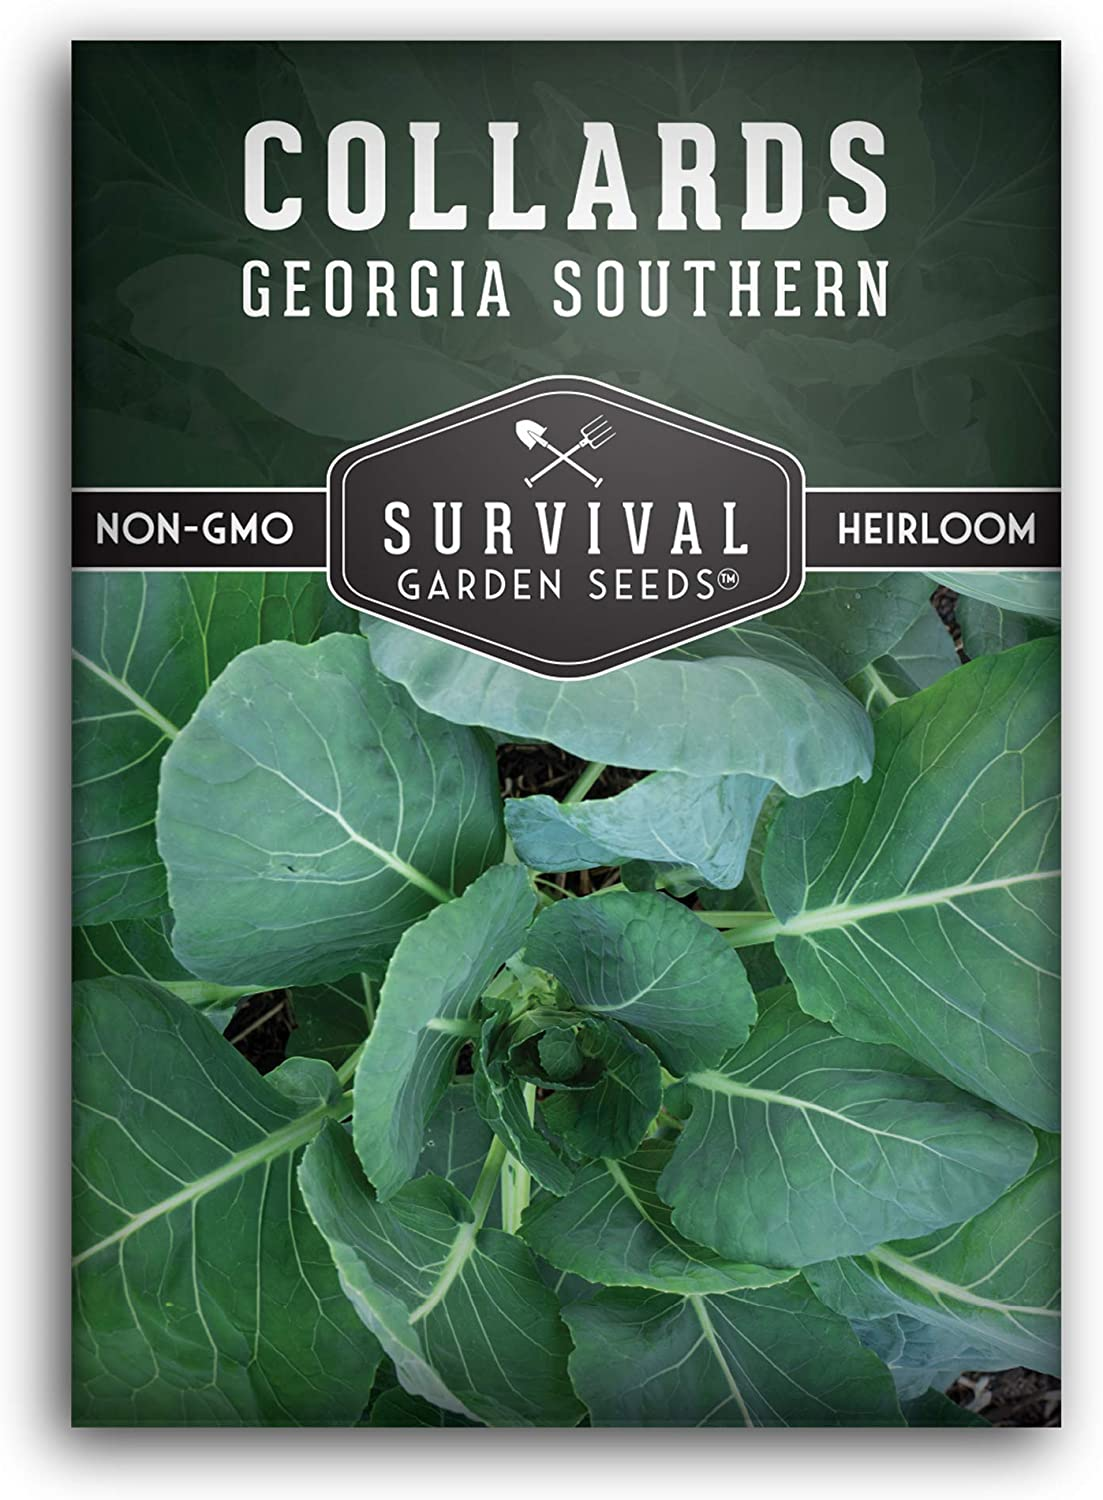 Survival Garden Seeds - Georgia Southern Collards Seed for Planting - Packet with Instructions to Plant and Grow Your Home Vegetable Garden - Non-GMO Heirloom Variety